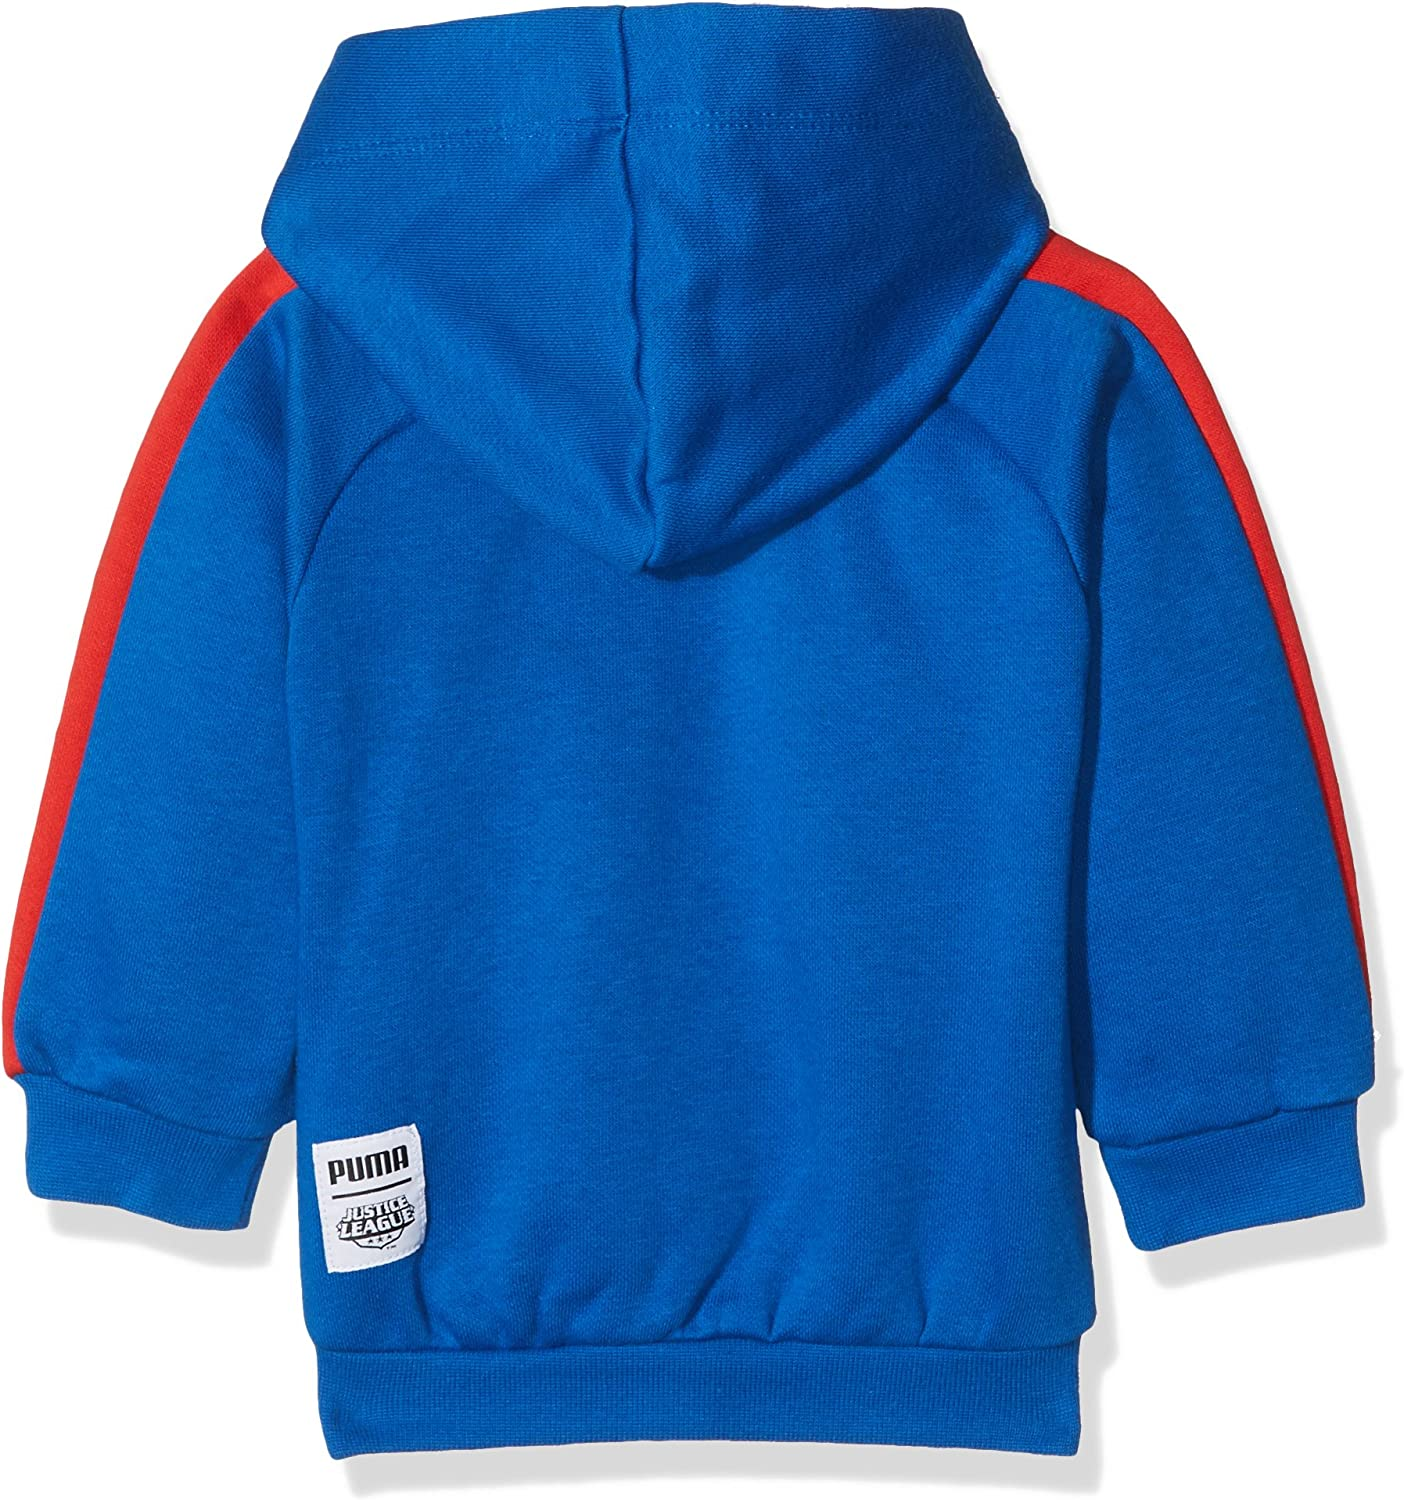 PUMA Childrens Justice League Hooded Jogger Suit